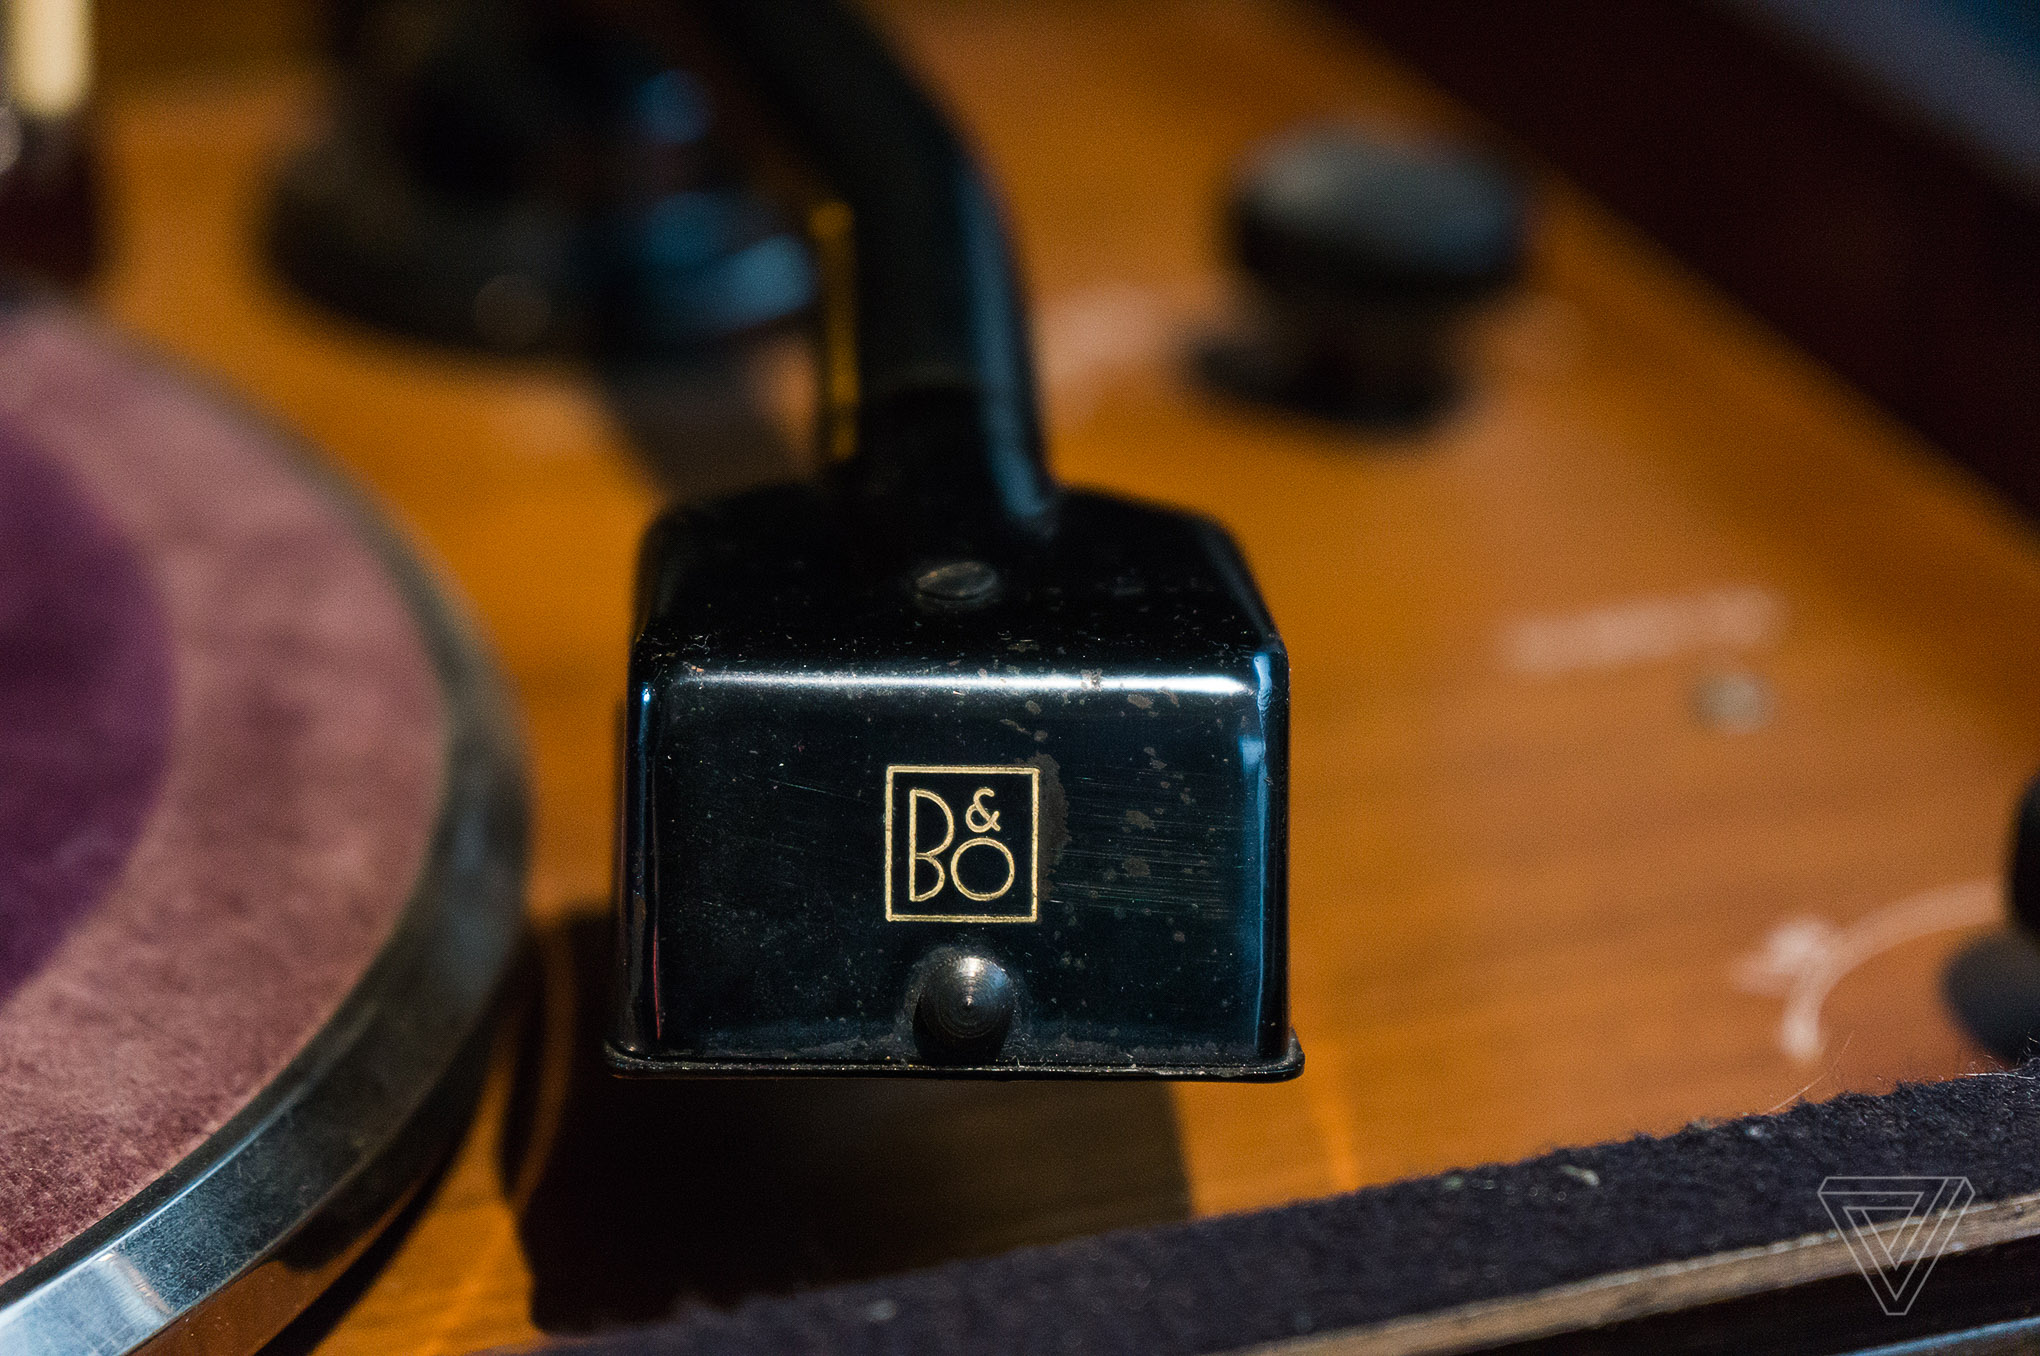 Folly of the Week – A Bang and Olufsen History Lesson